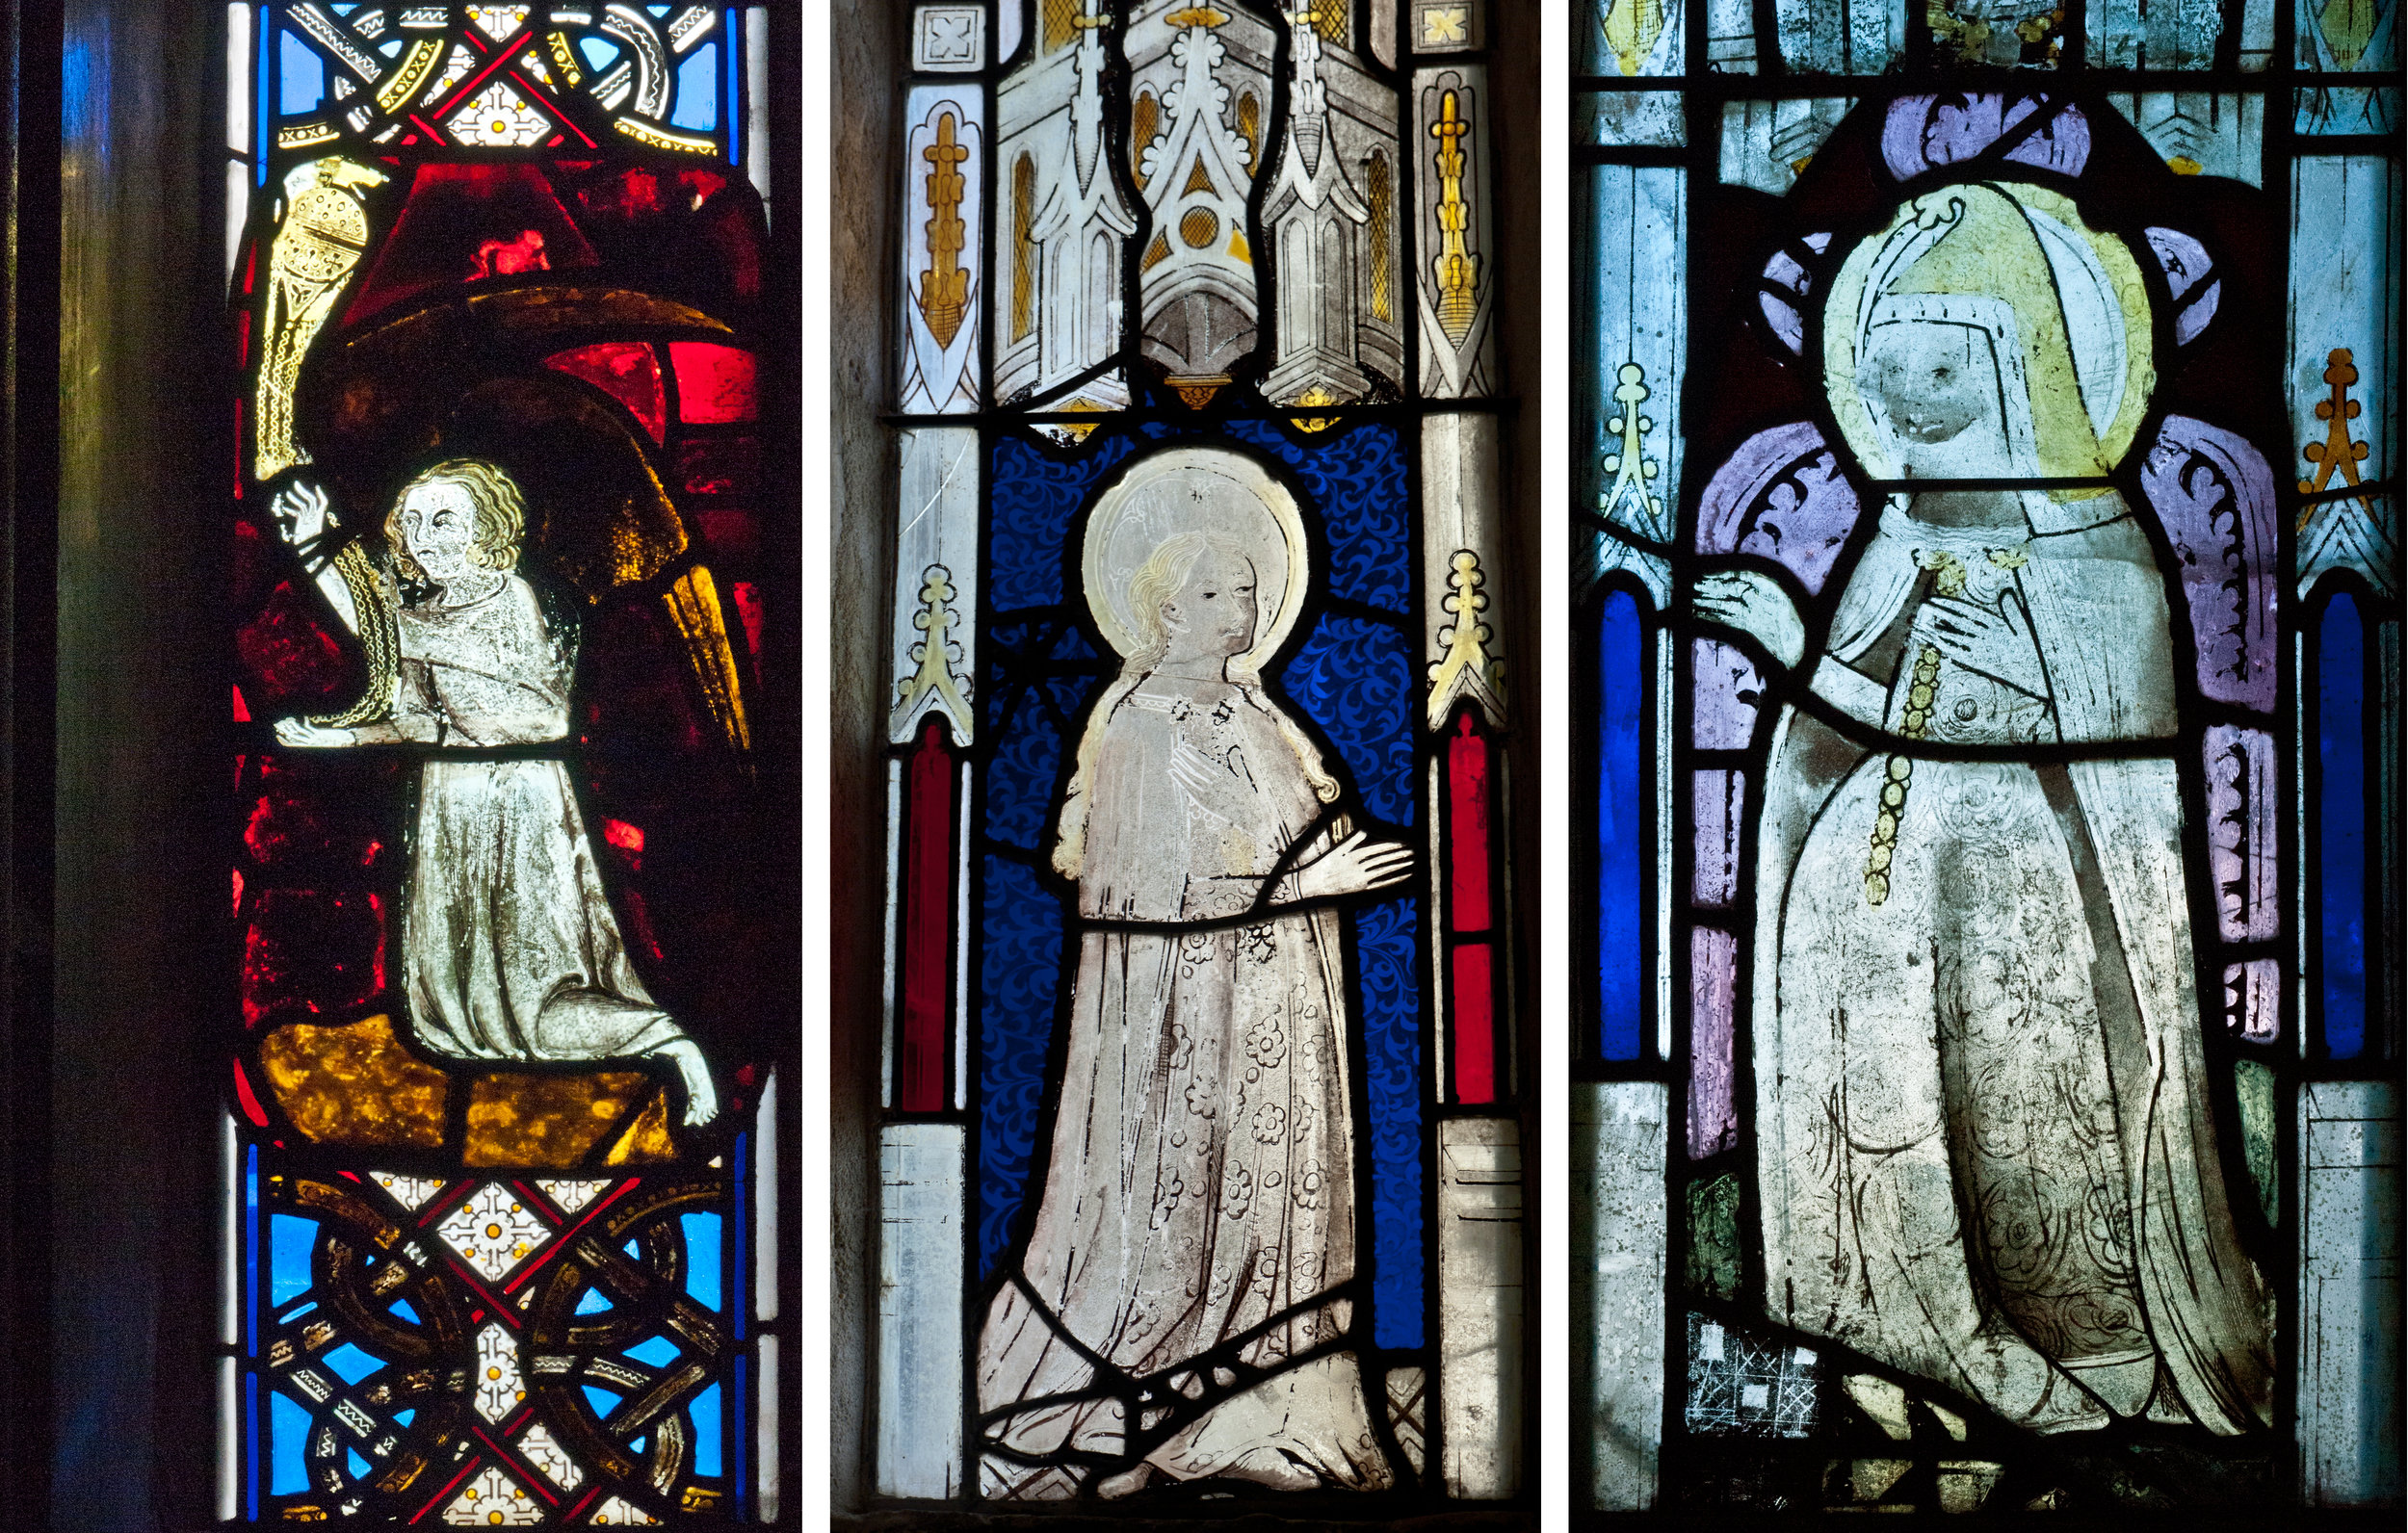 Figures from the windows in the small north and south apses.